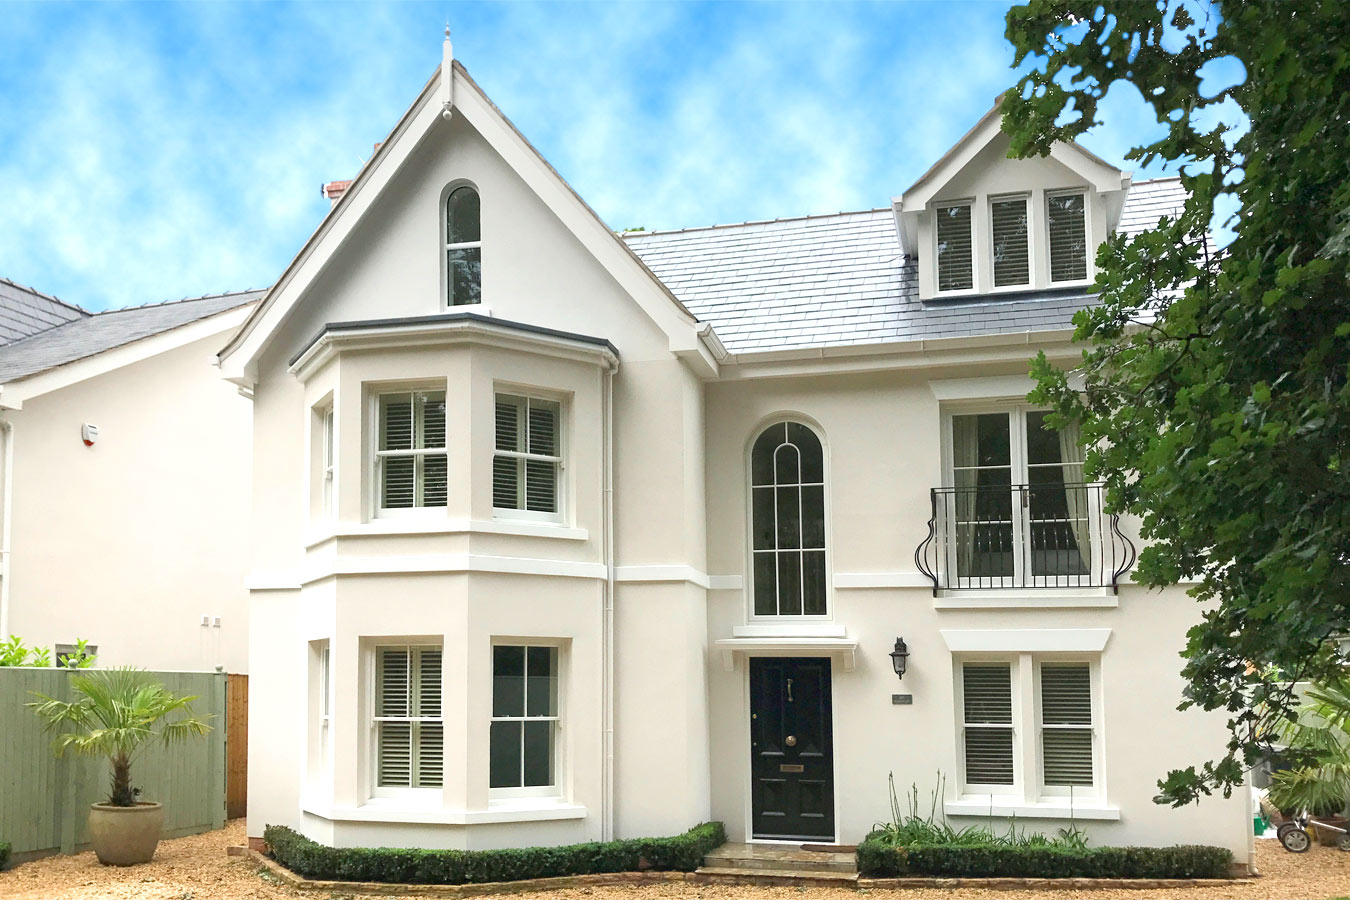 timber sash windows oxford, woodcraft windows